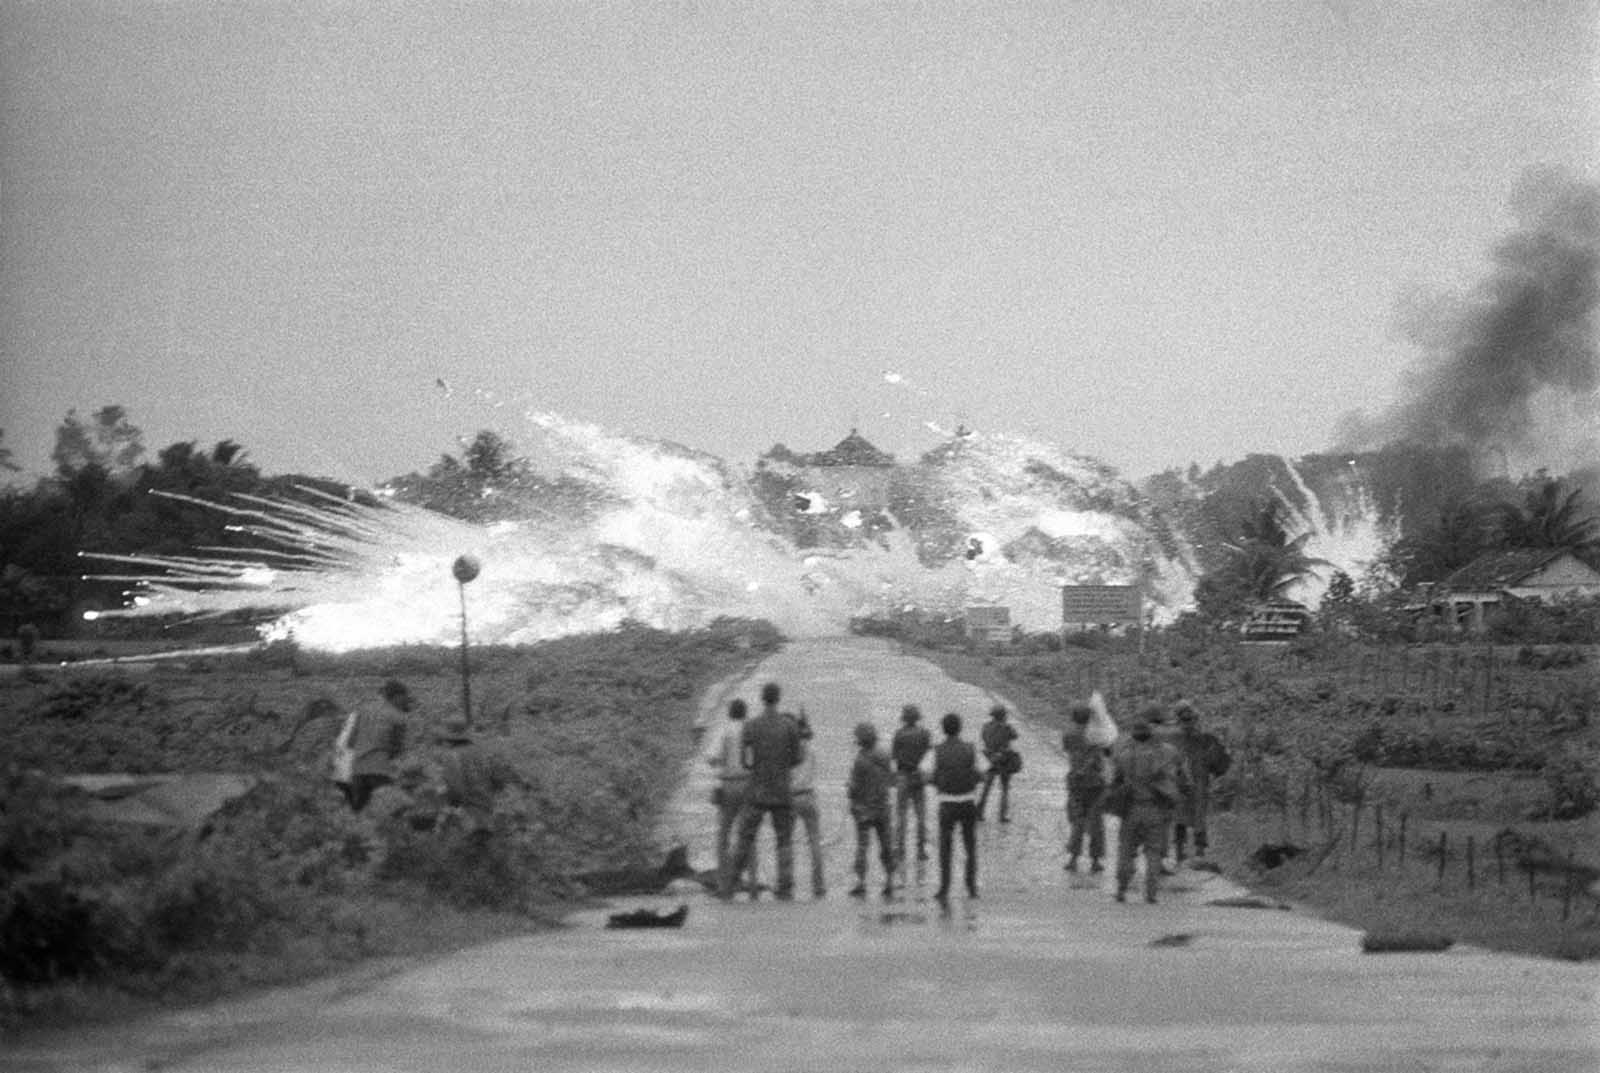 Bombs with a mixture of napalm and white phosphorus jelly dropped by Vietnamese AF Skyraider bombers explode across Route 1, amid homes and in front of the Cao Dai Temple in the outskirts of Trang Bang, on June 8, 1972. In the foreground are Vietnamese soldiers and news and cameramen from various international news organizations who watch the scene.